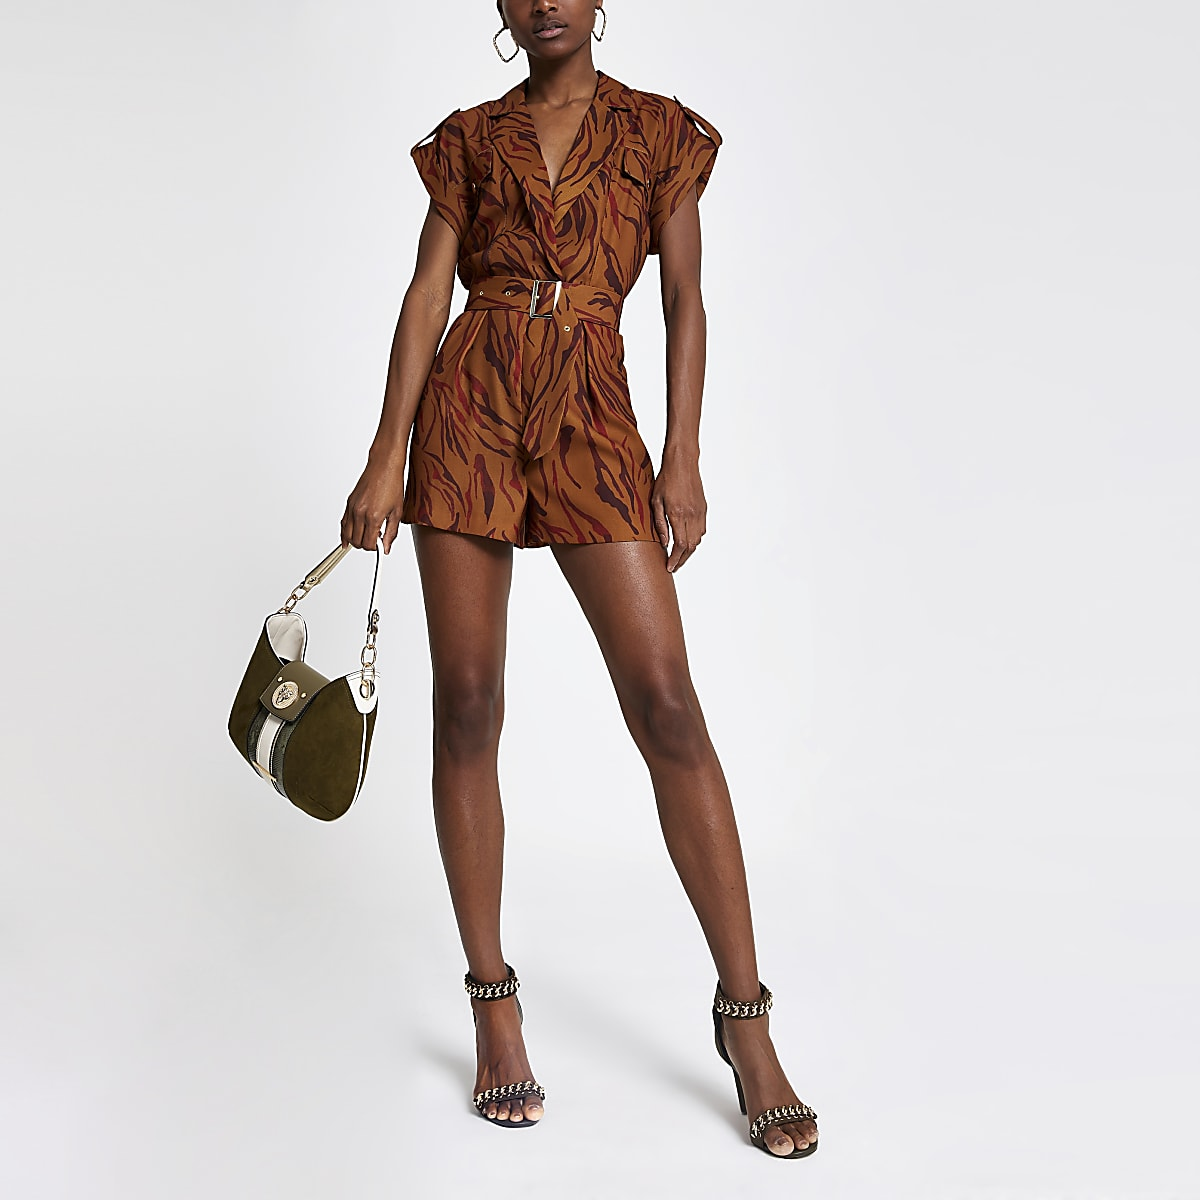 Brown zebra print utility playsuit